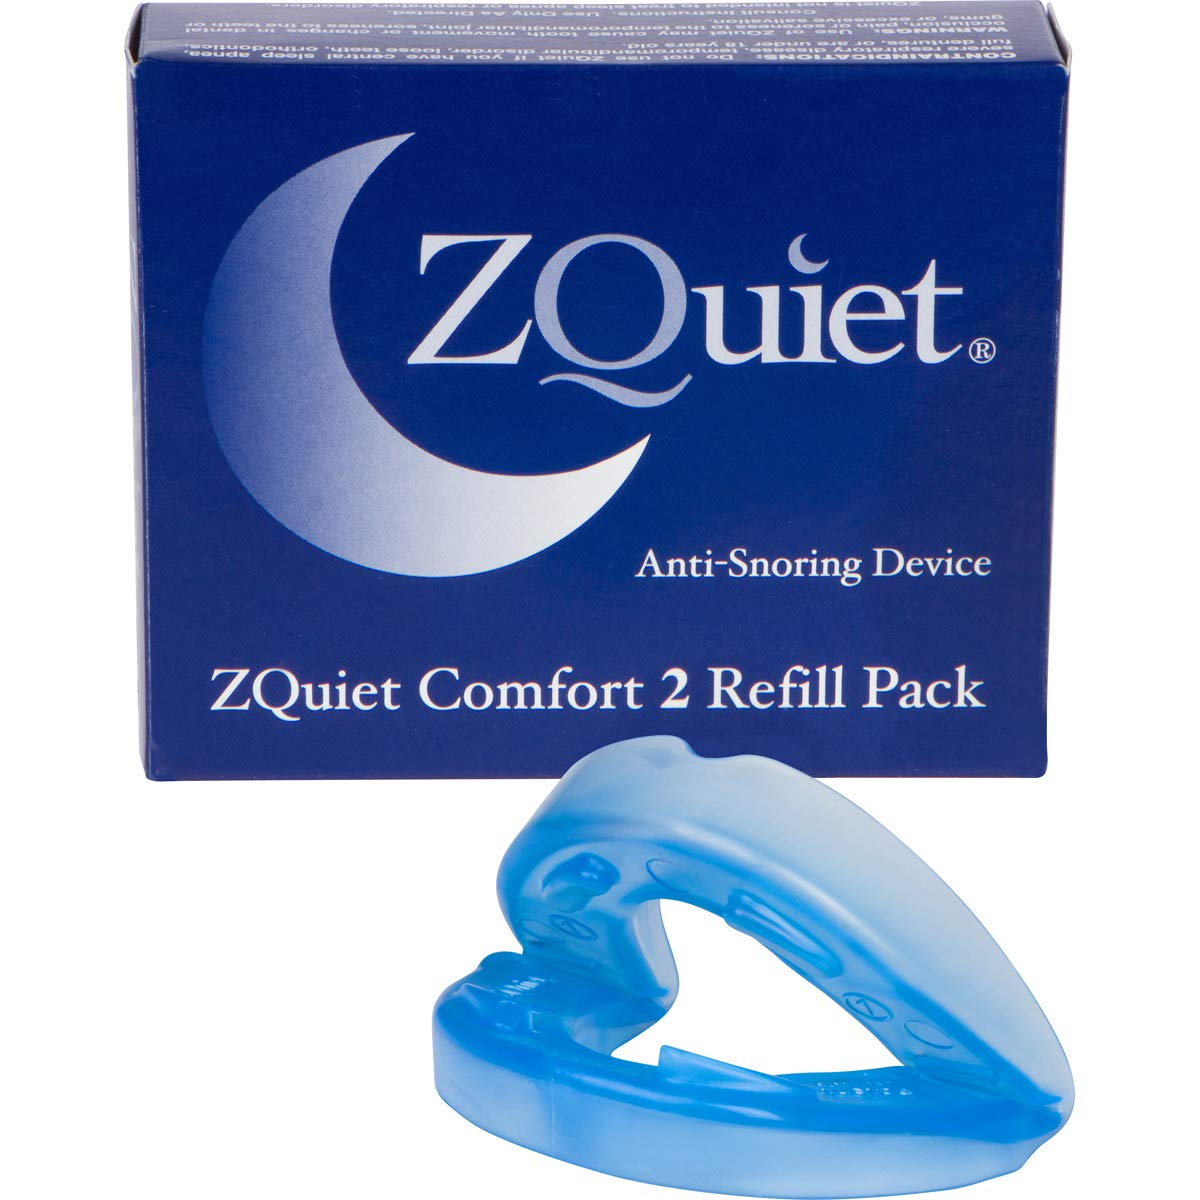 ZQuiet® Anti-Snoring Device, Size: Comfort 2 (+6mm) Mouthpiece, Refill ONLY (Try Starter Kit First to Ensure This is Your Optimal Size)